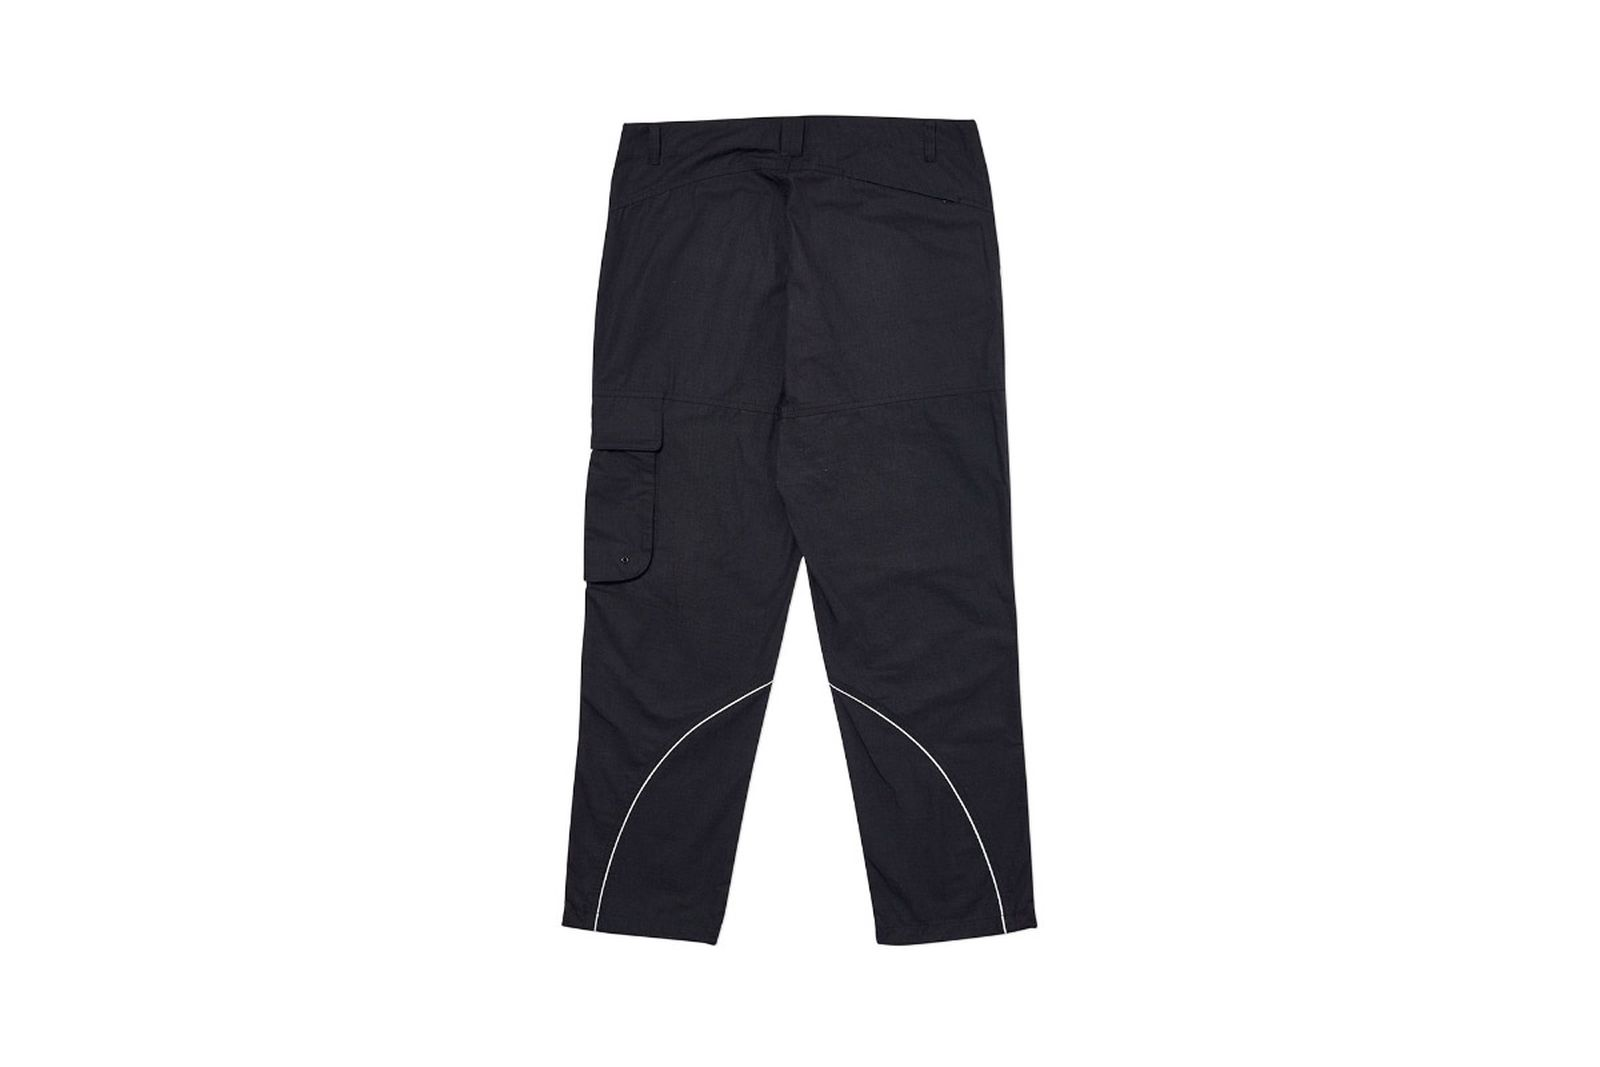 Palace 2019 Autumn Trouser Cargo black back fw19